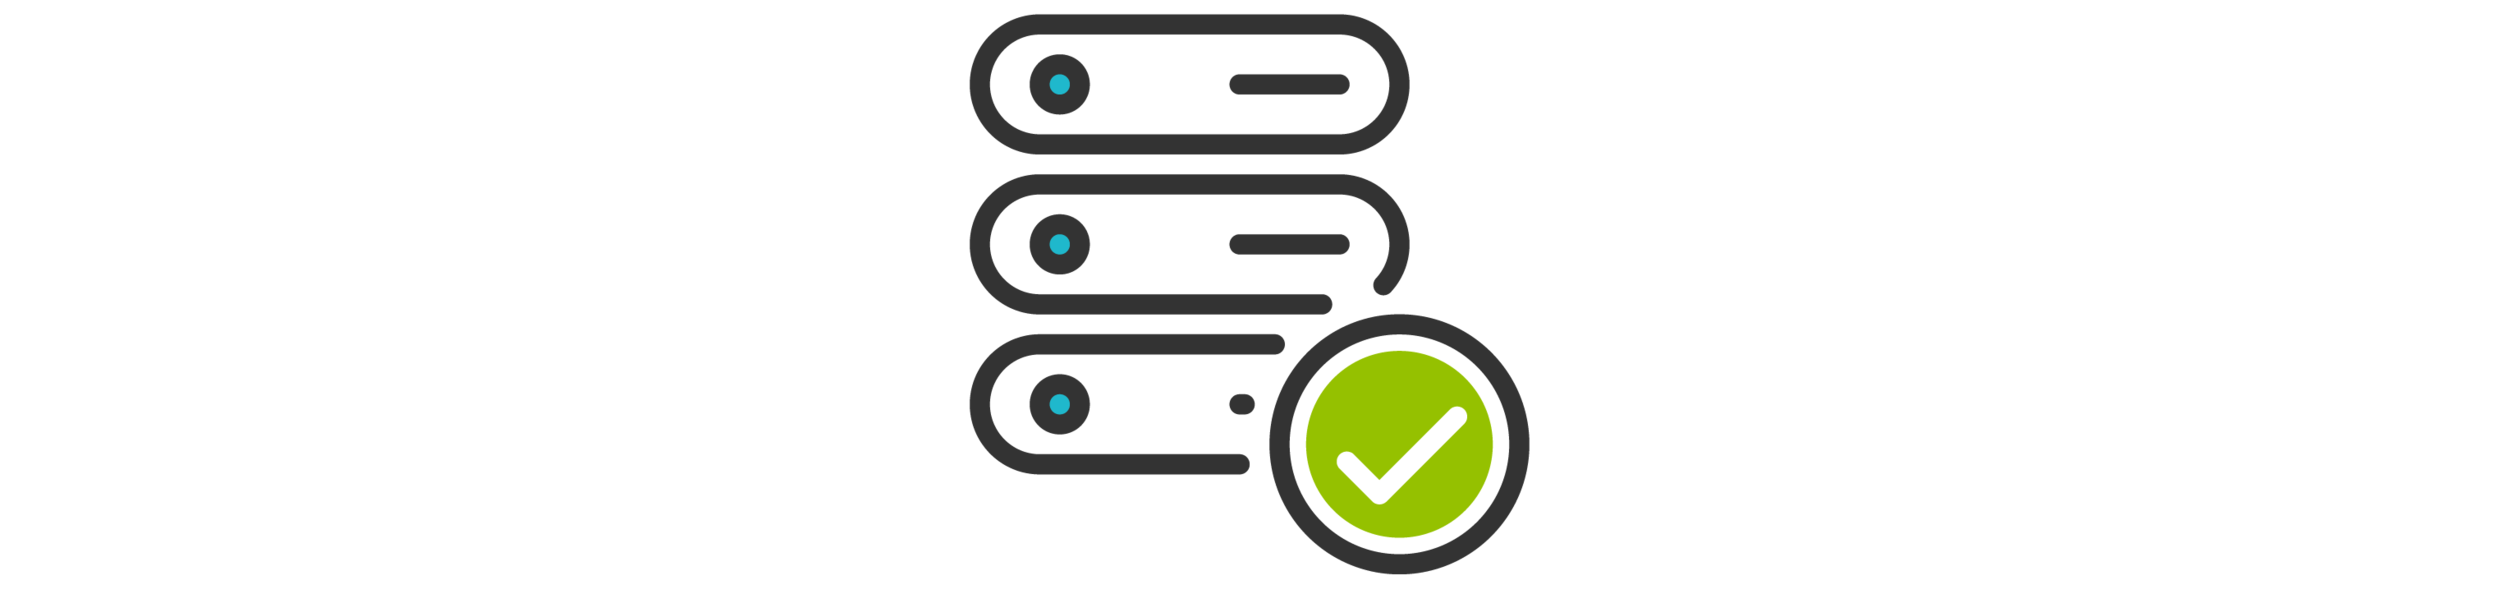 icon-Data_Infrastructure-multi.png